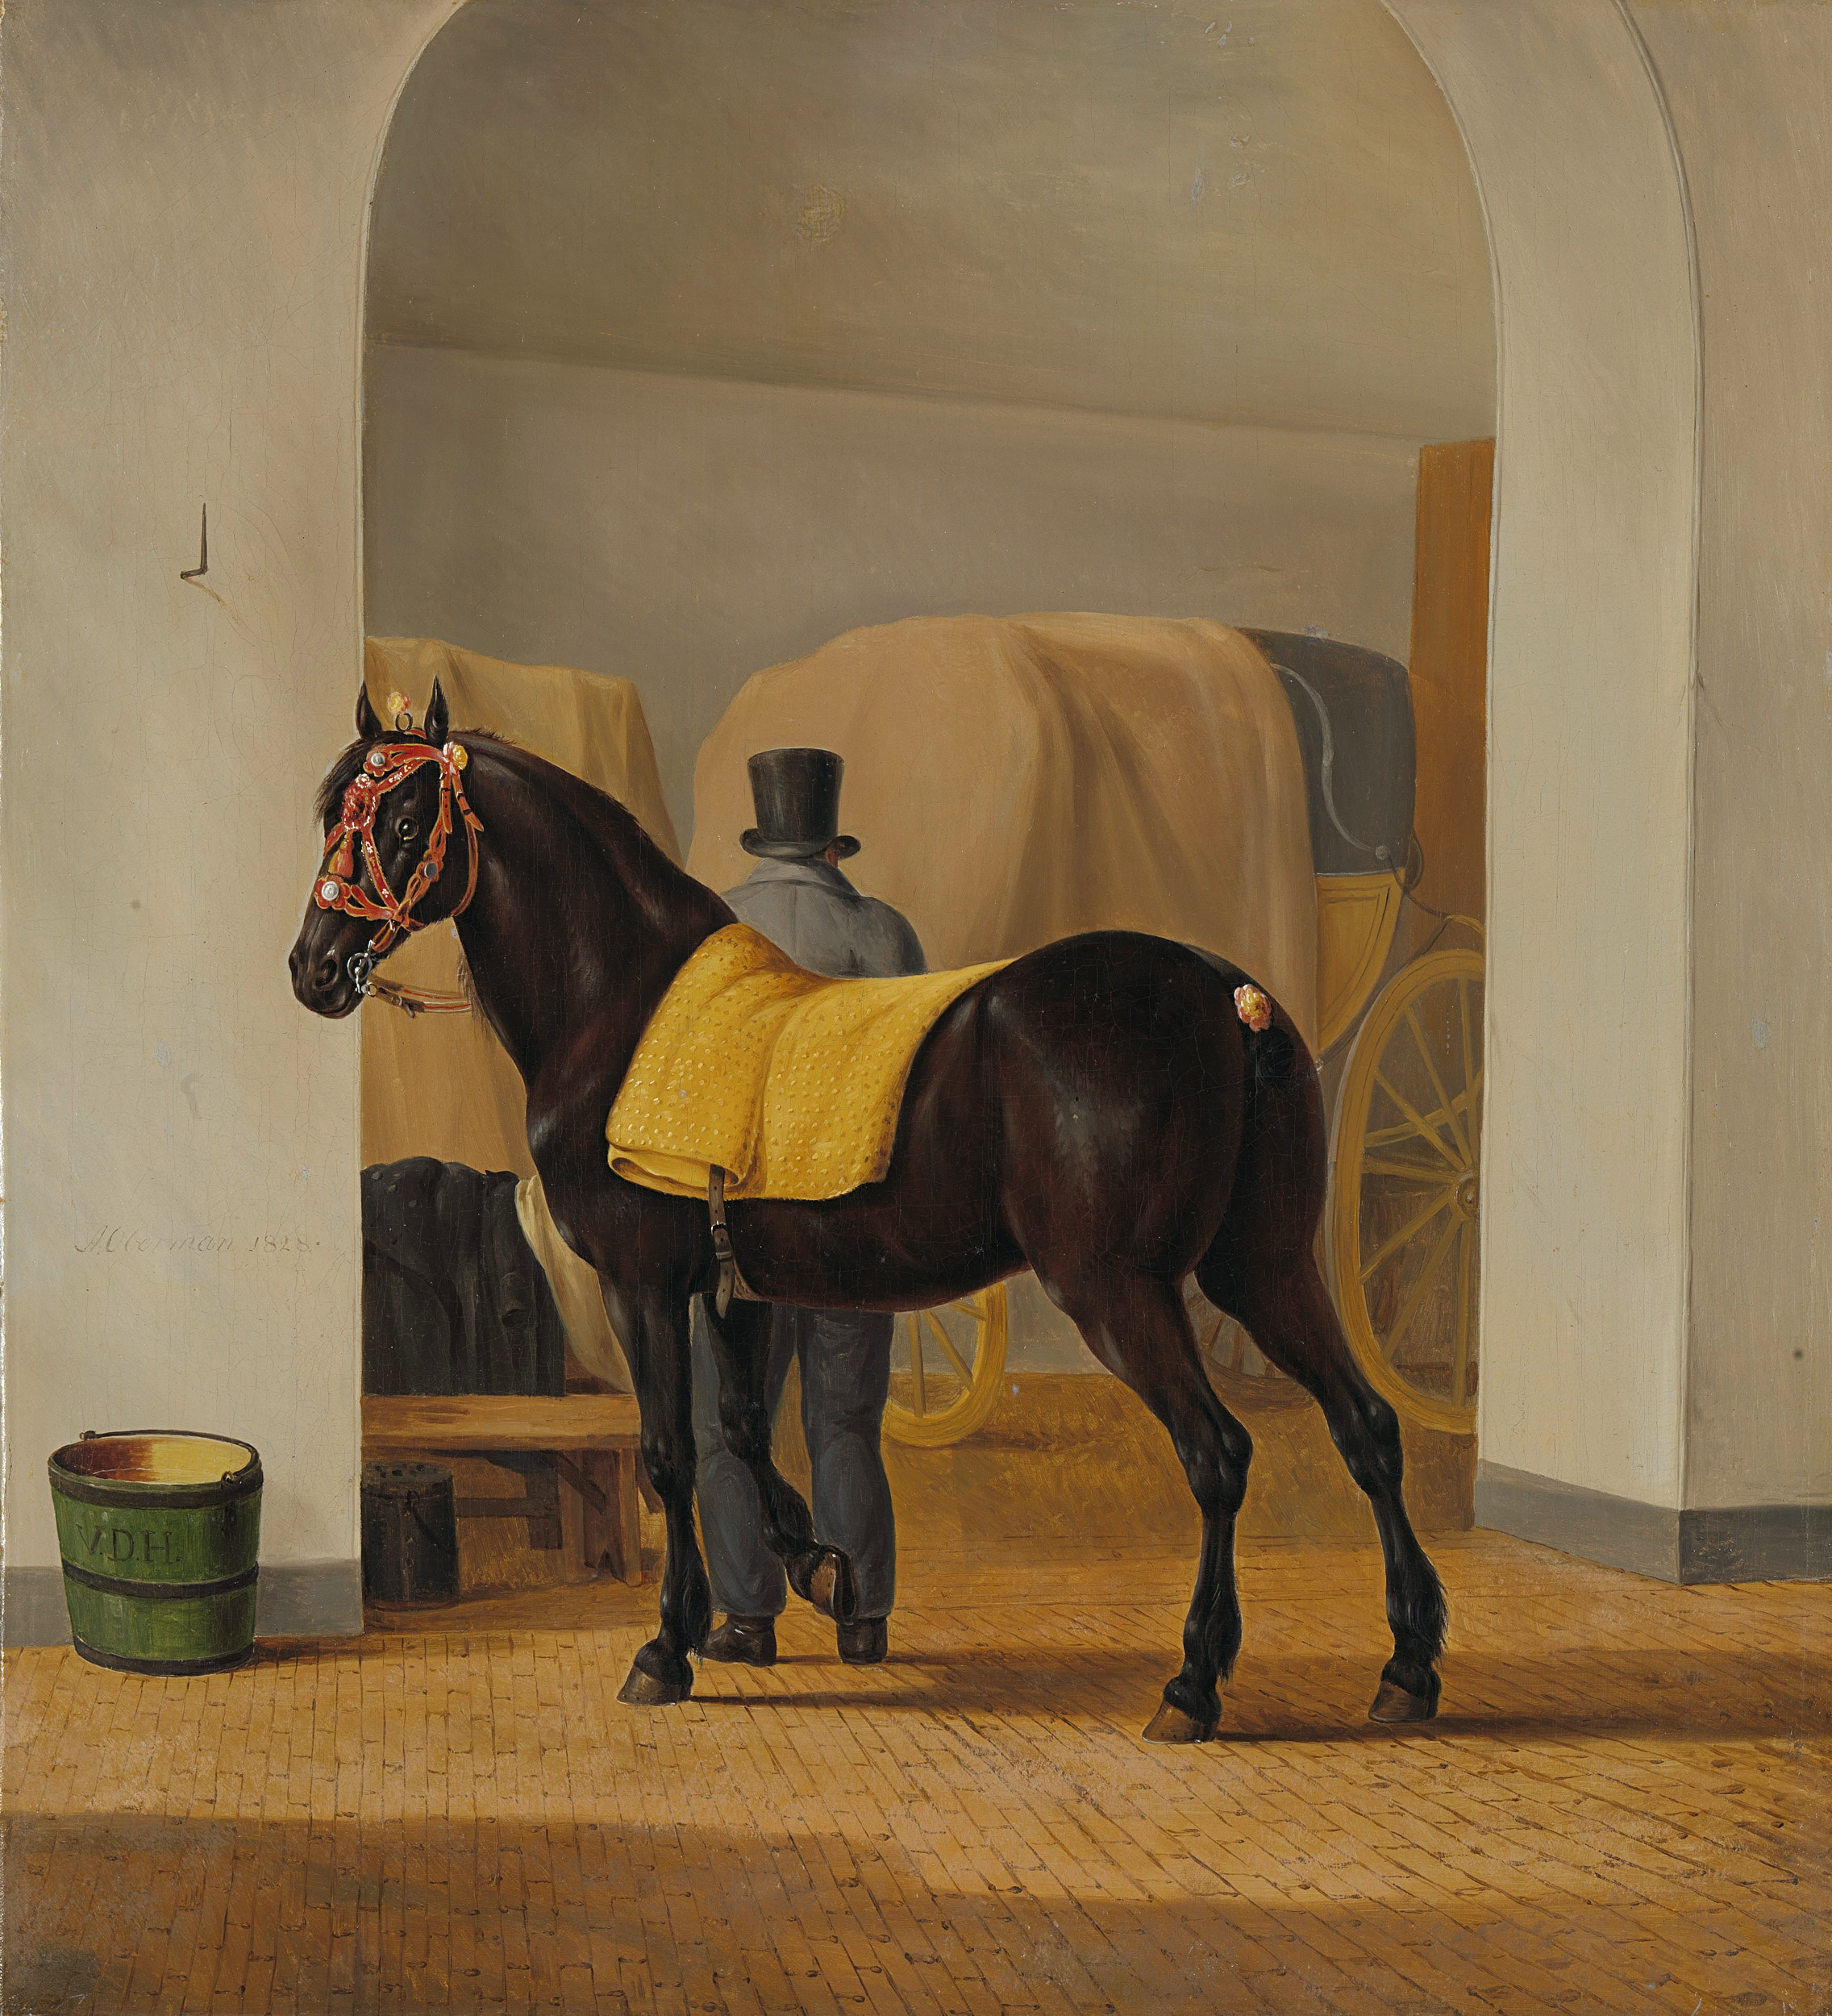 Title: Adriaan van der Hoop's Trotter 'De Rot' at the Coach House. Date: 1828. Institution: Rijksmuseum. Provider: Rijksmuseum. Providing Country: Netherlands. Public Domain